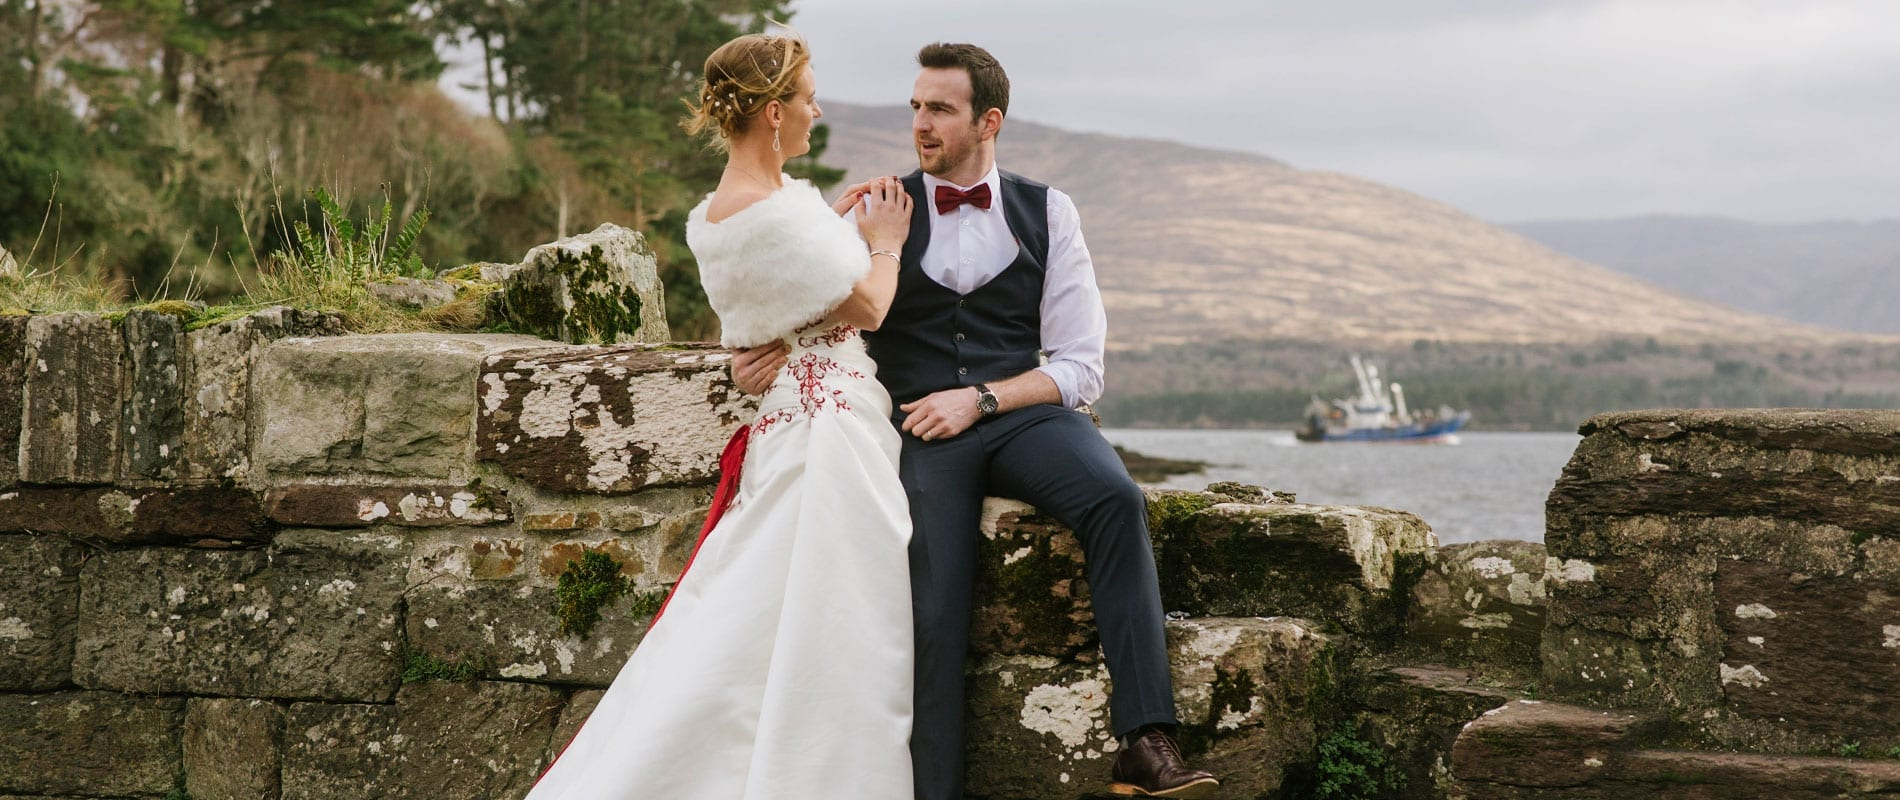 Parknasilla Wedding Photographer Nick Cavanagh